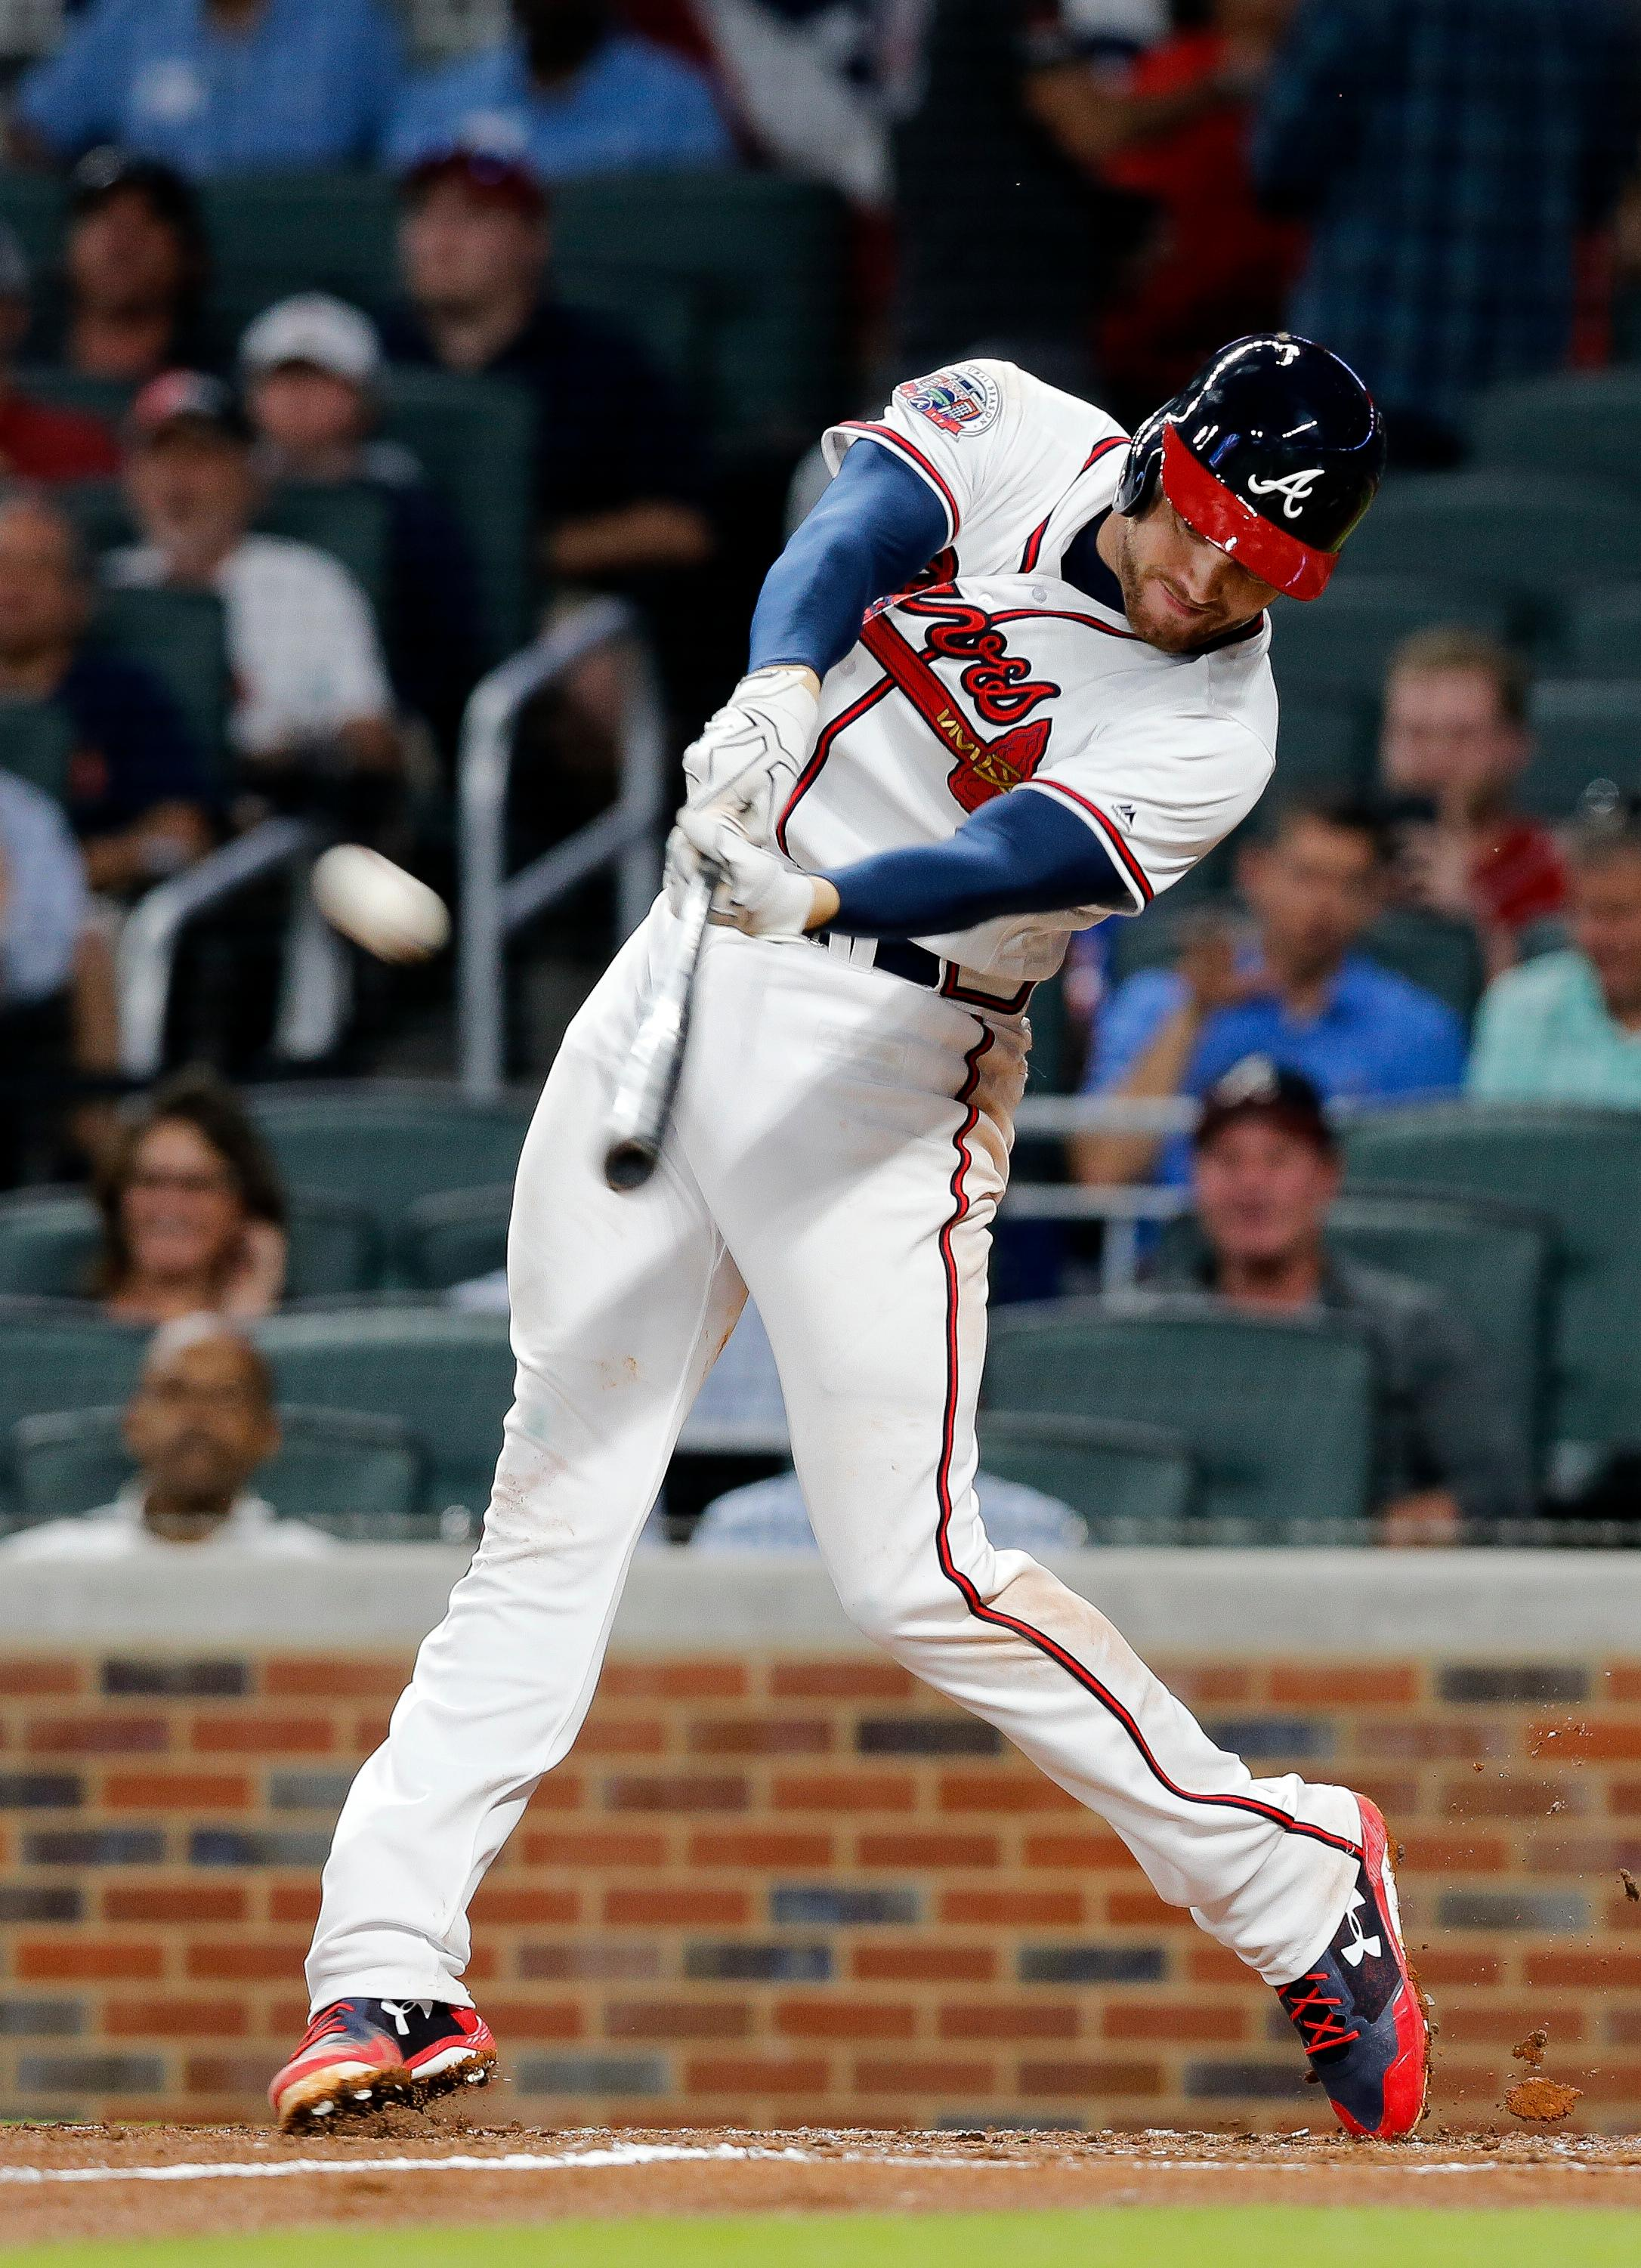 Atlanta Braves' Freddie Freeman connects on a two-run home run in the third inning of a baseball game against the San Diego Padres, Monday, April 17, 2017, in Atlanta. (AP Photo/John Bazemore)